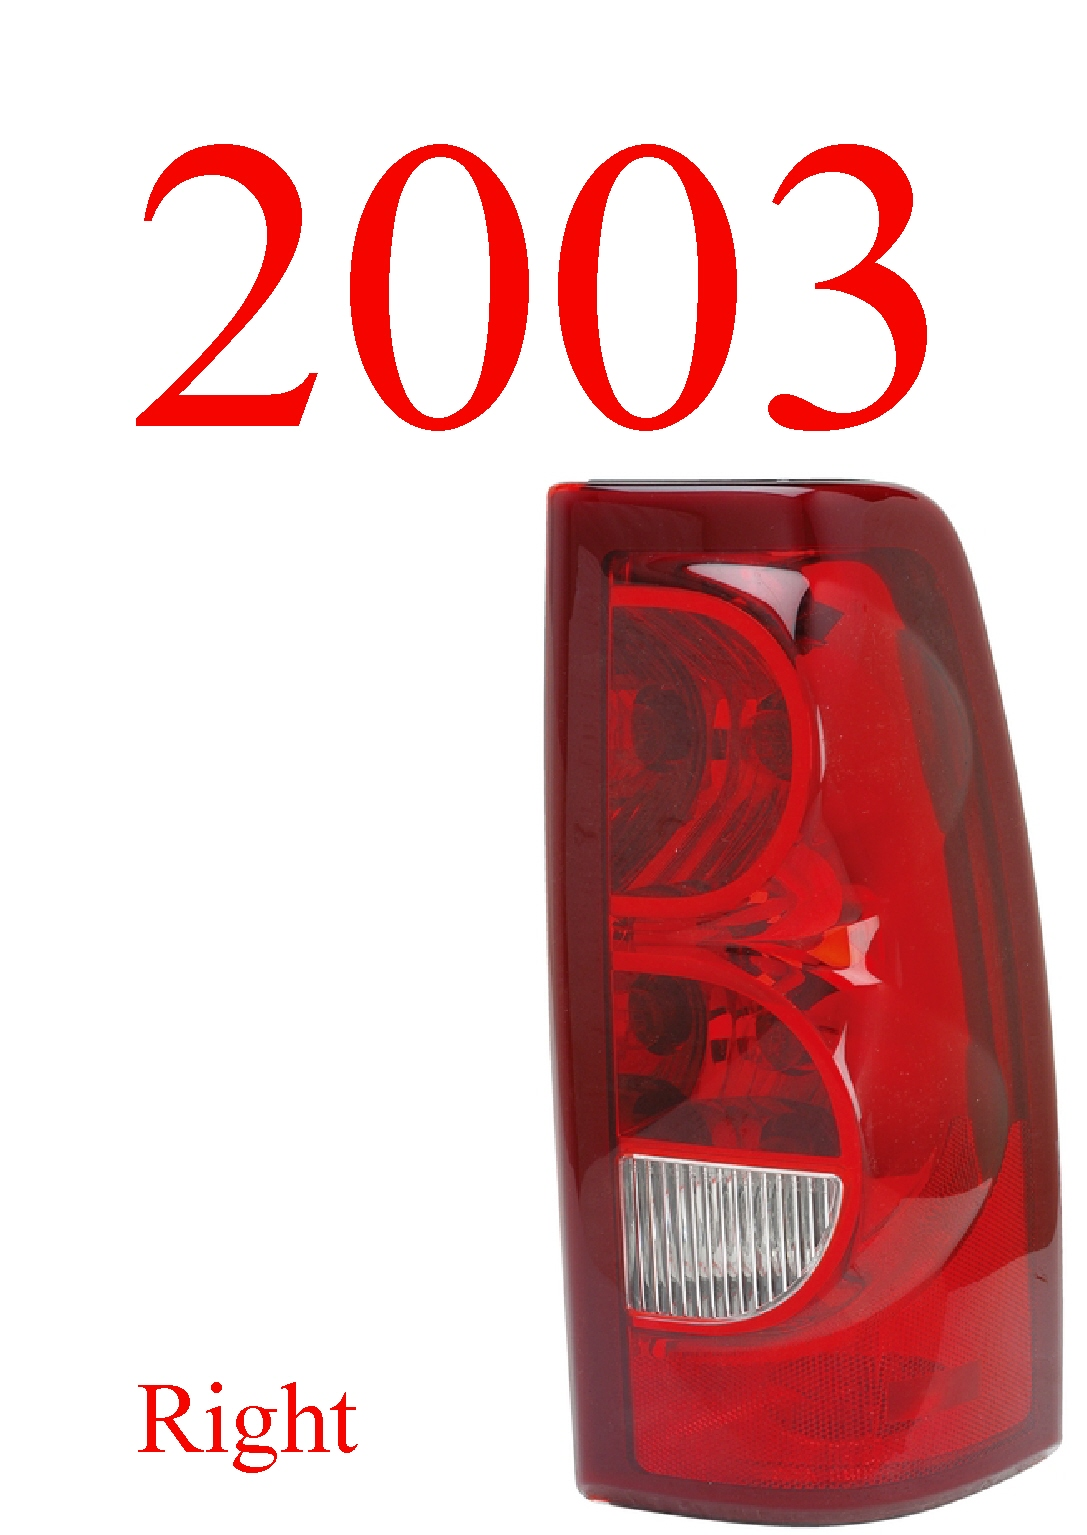 03 Chevy Right Tail Light, Silverado